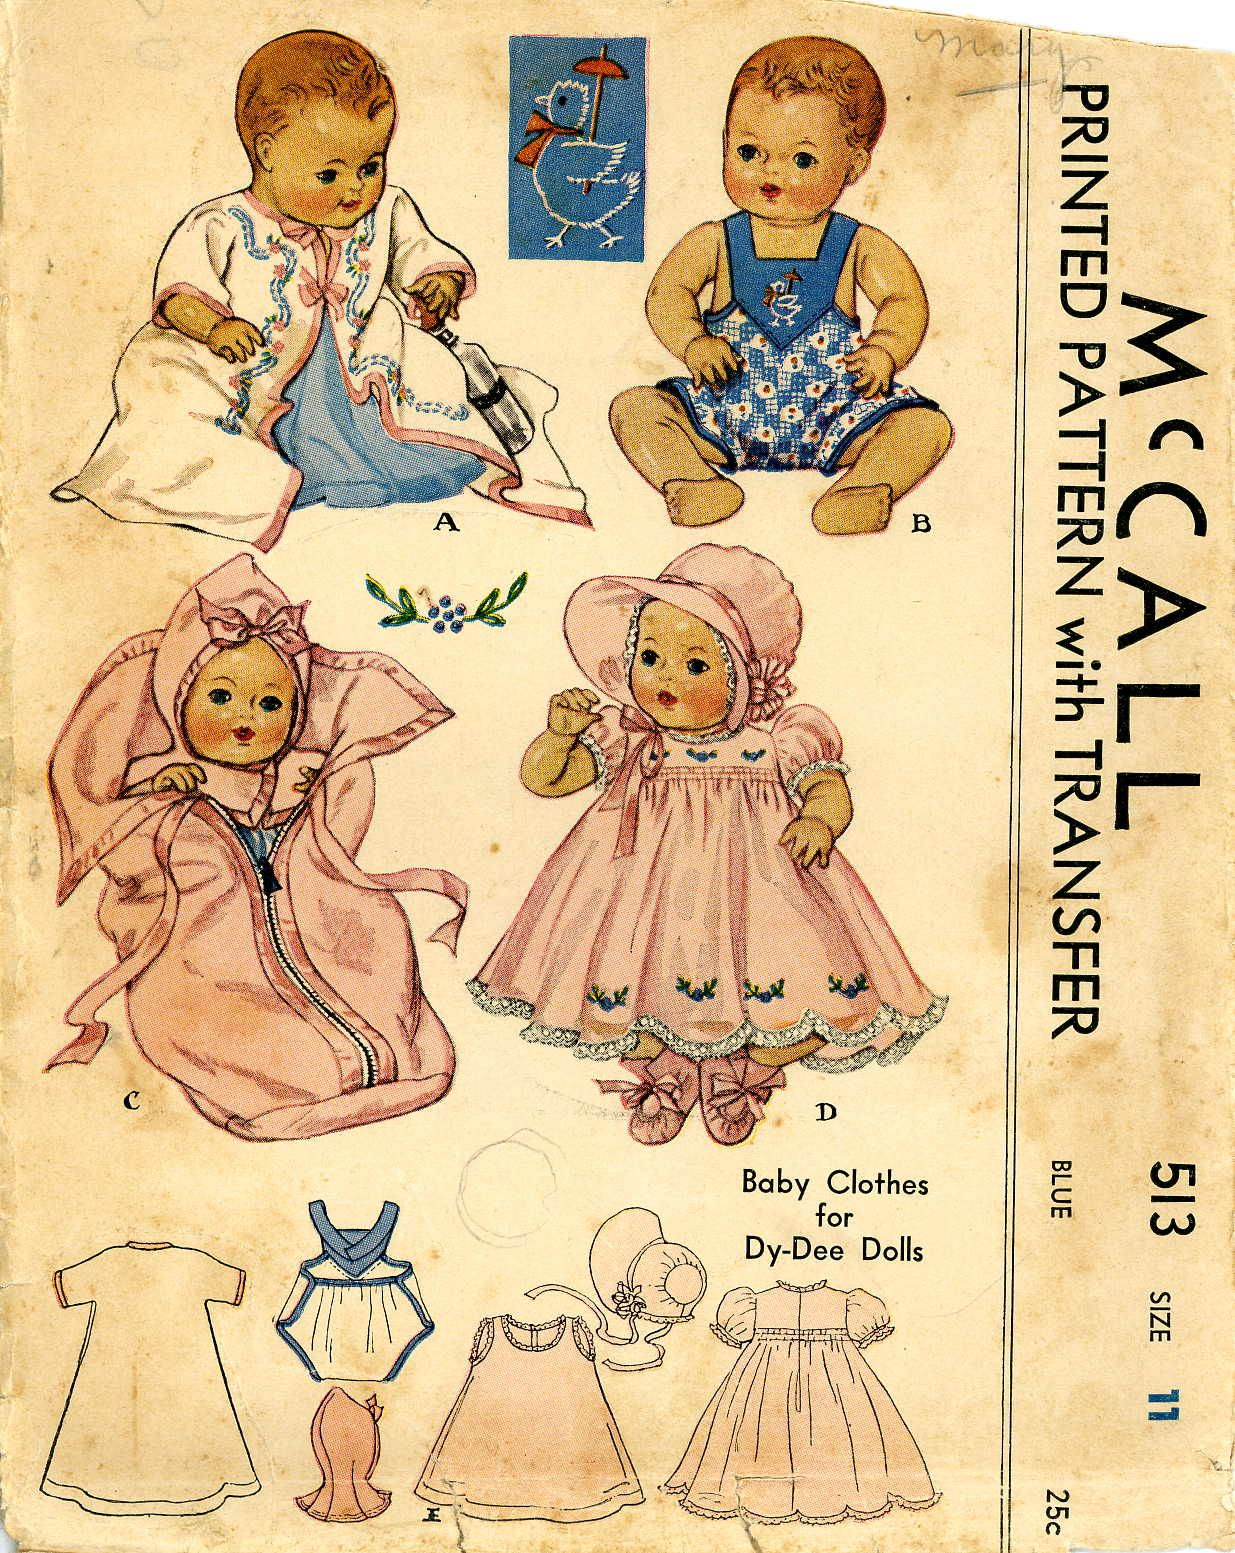 Mccall 513 Doll Clothes Pattern For Dydee Dolls 11 Size A 1930 S Pattern Baby Doll Clothes Patterns Baby Doll Clothes Doll Sewing Patterns